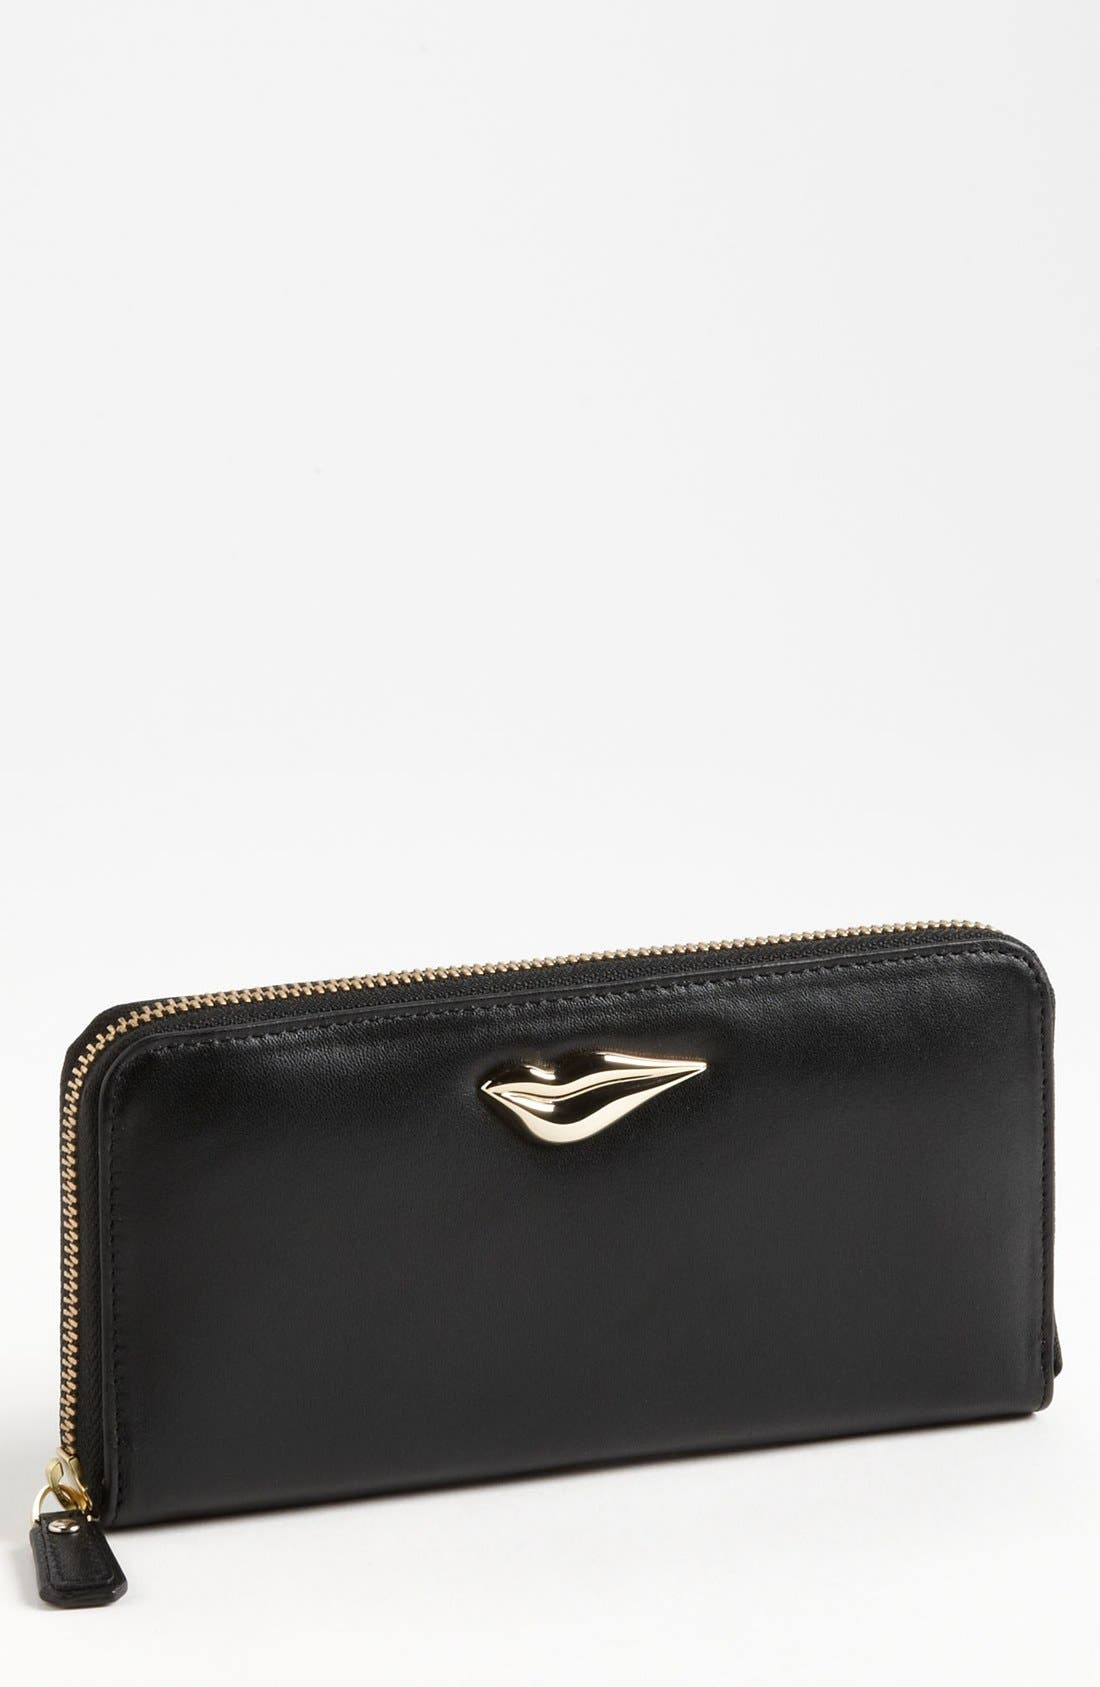 Alternate Image 1 Selected - Diane von Furstenberg 'Lips' Leather Wallet